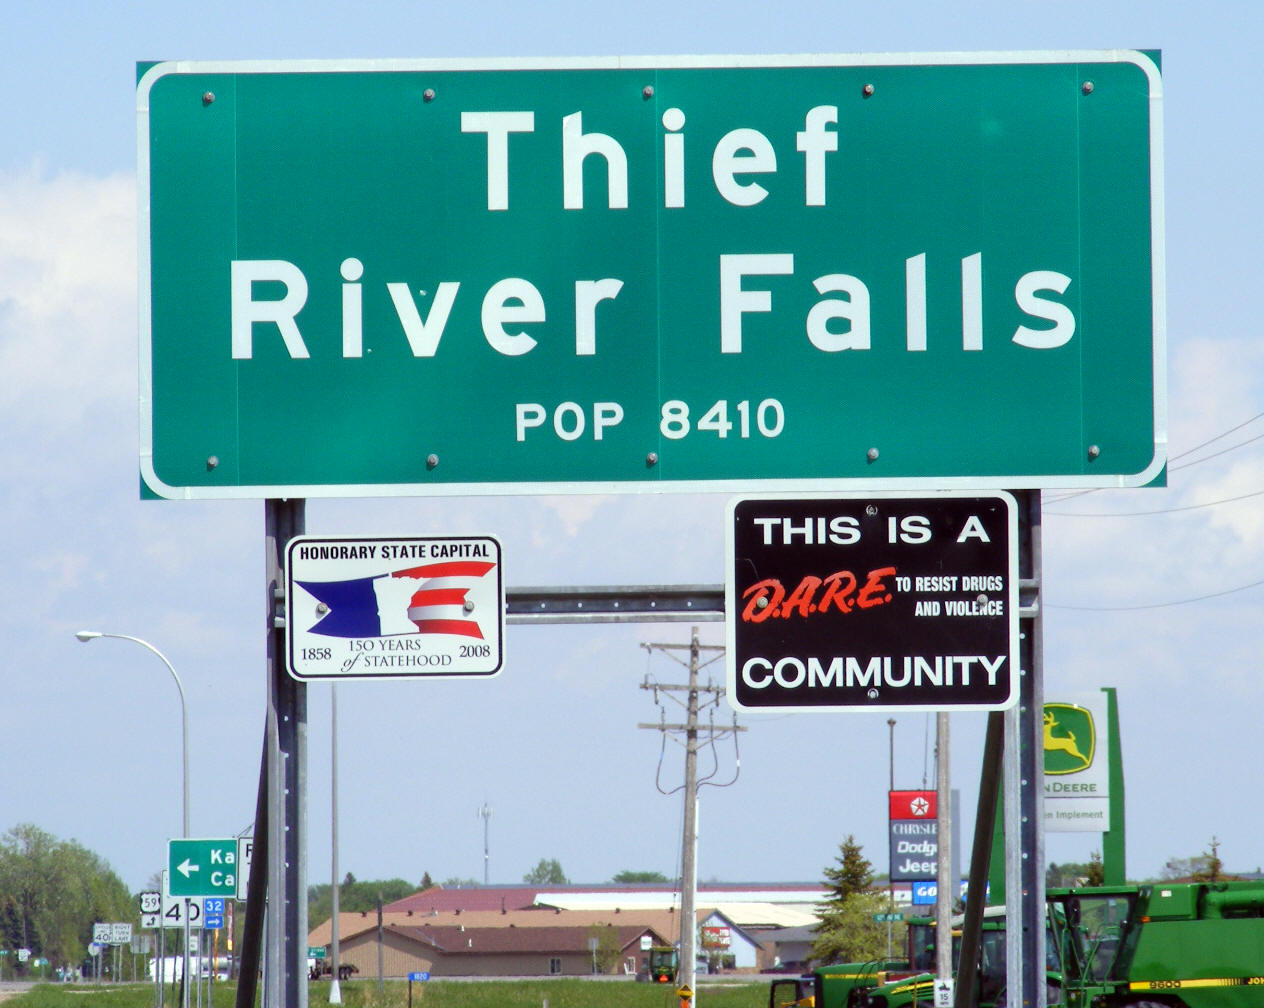 thief river falls singles over 50 Single family housing repair loans & grants in minnesota have a family income below 50 percent of the area median income thief river falls (218.